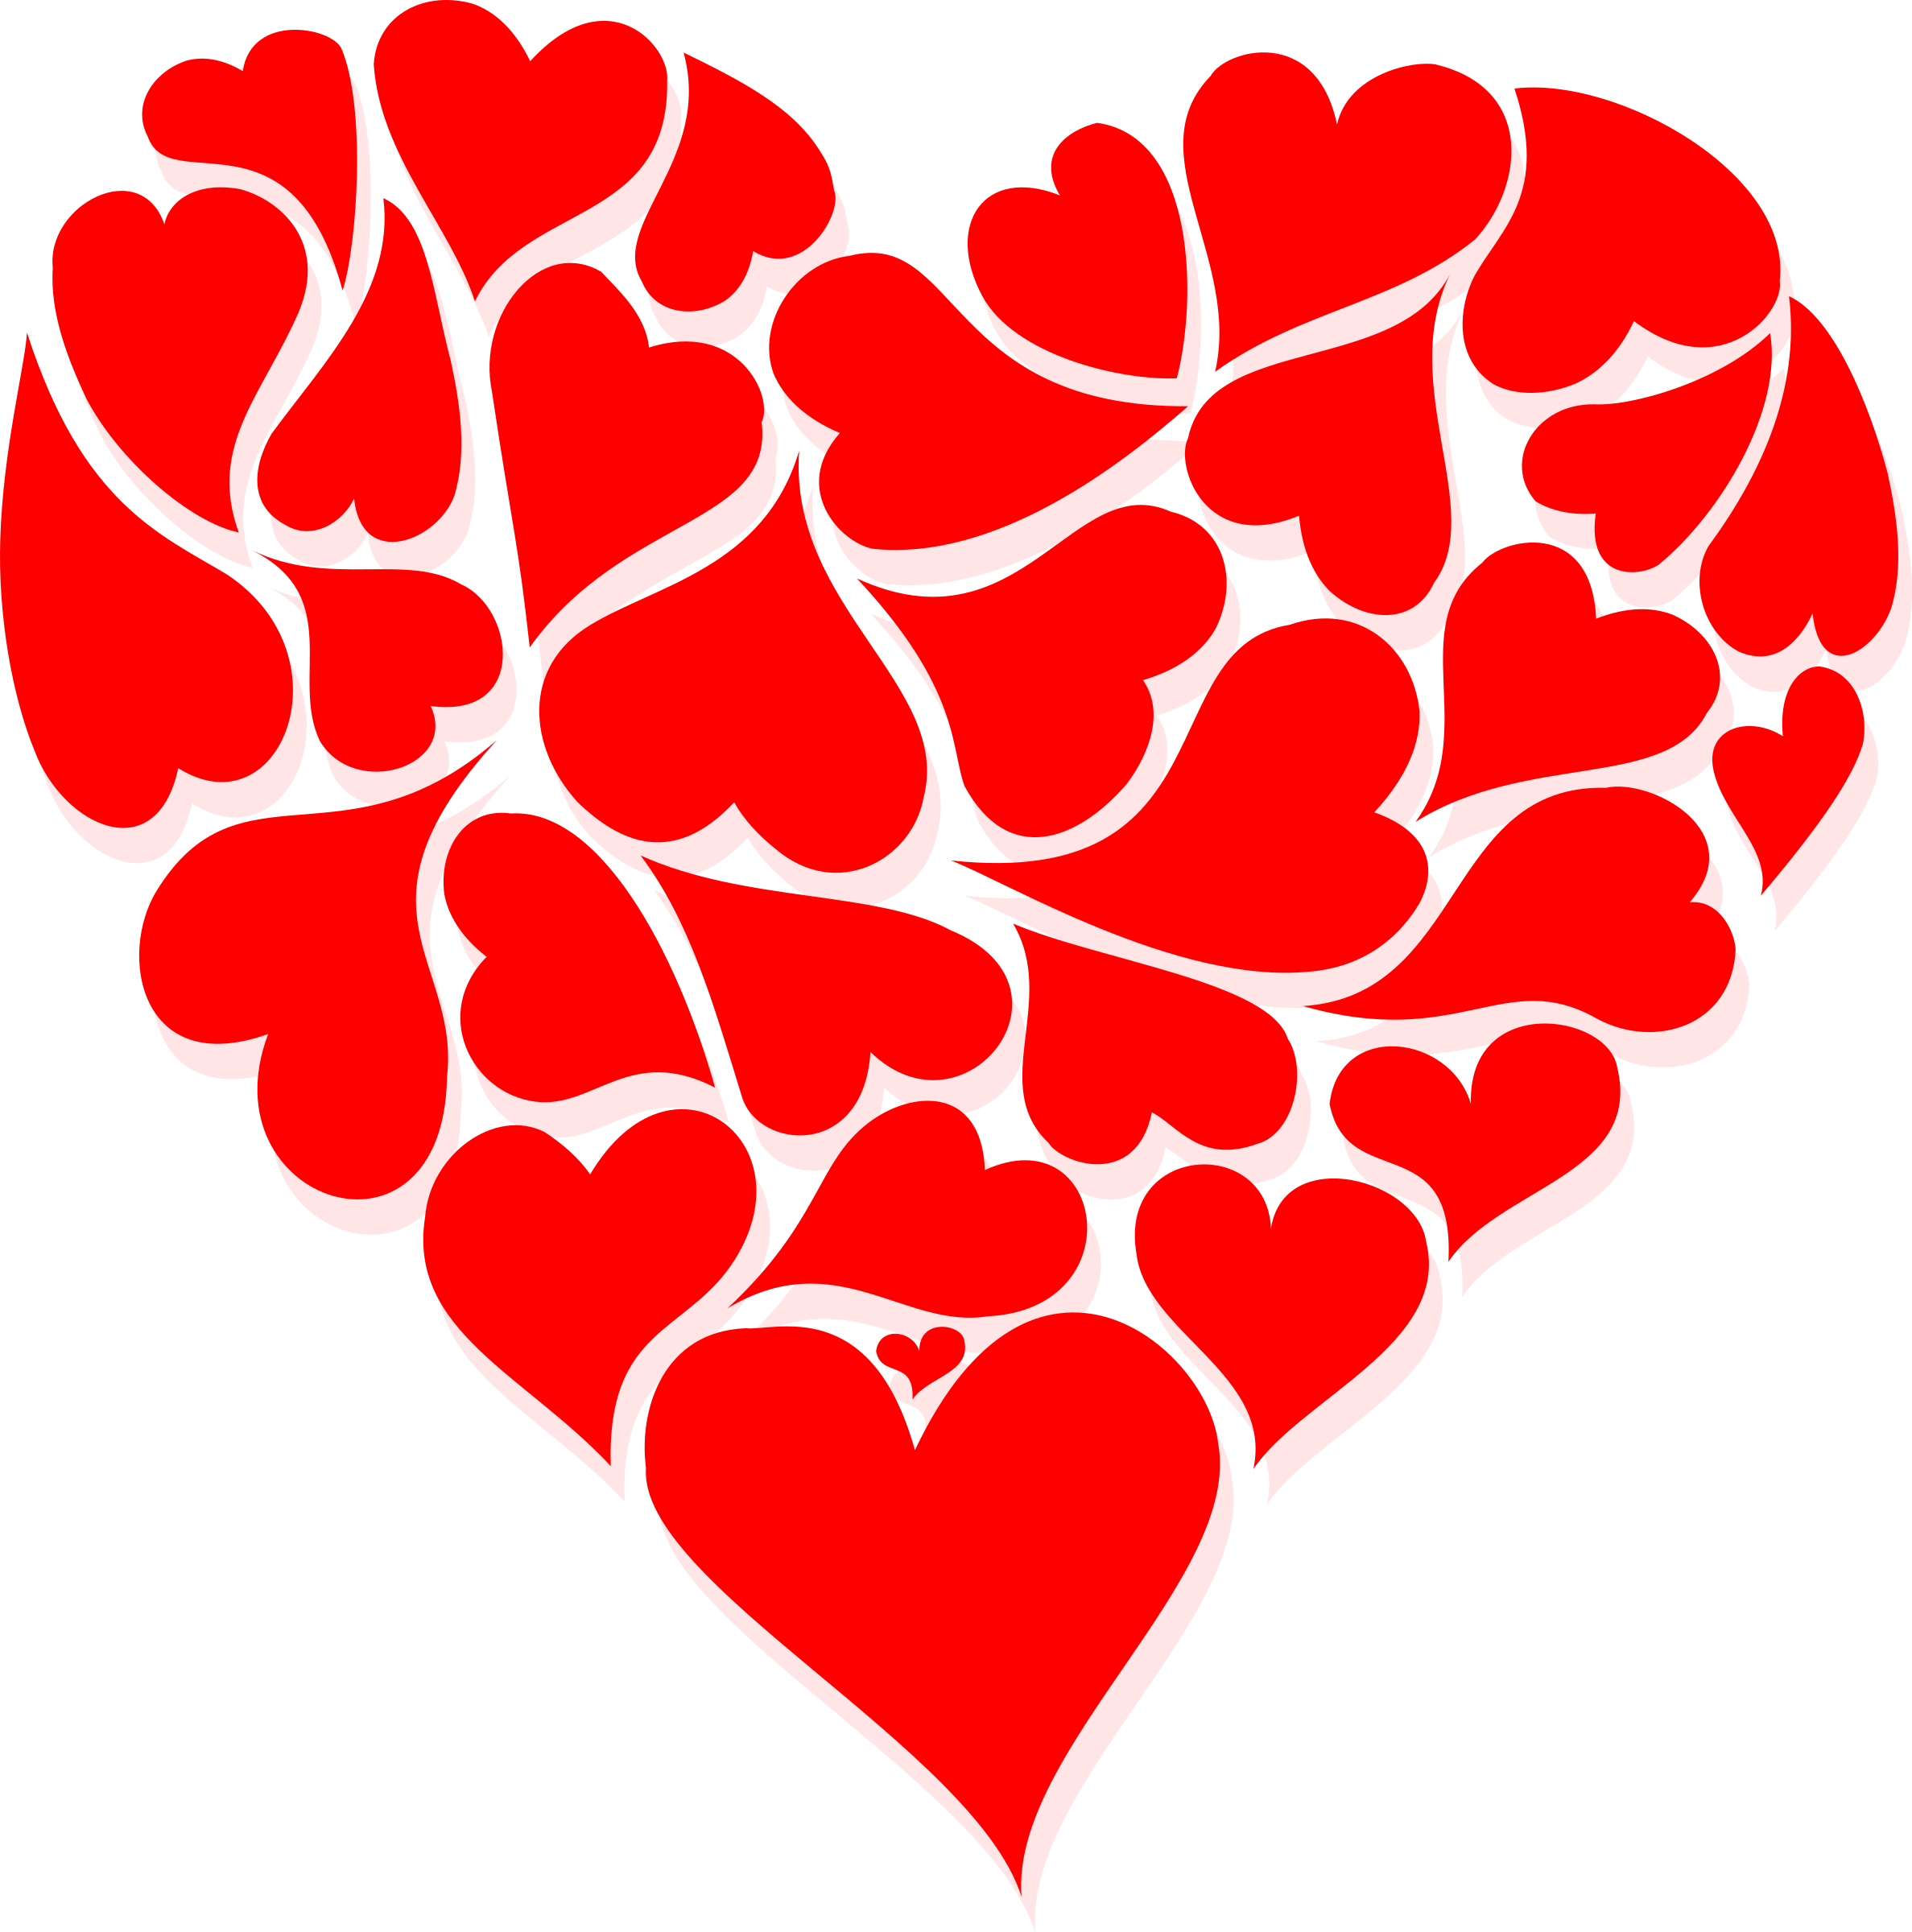 Valentines day heart png. Happy texture transparentpng